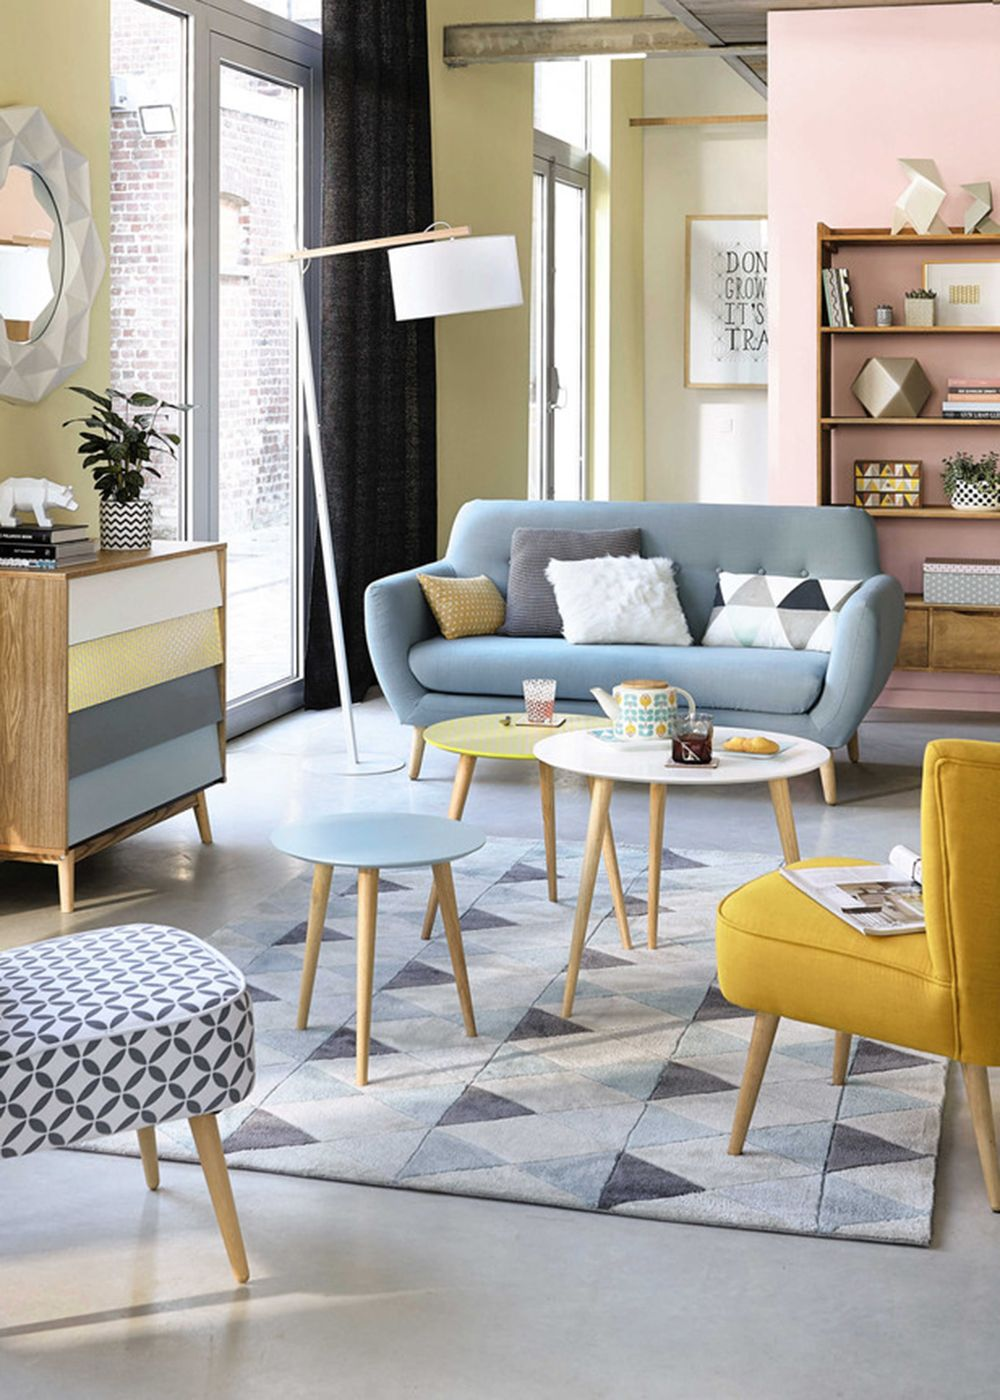 Maisons Du Monde Near Me Pastel Living Room Inspiration With Scandinavian Style Maisons